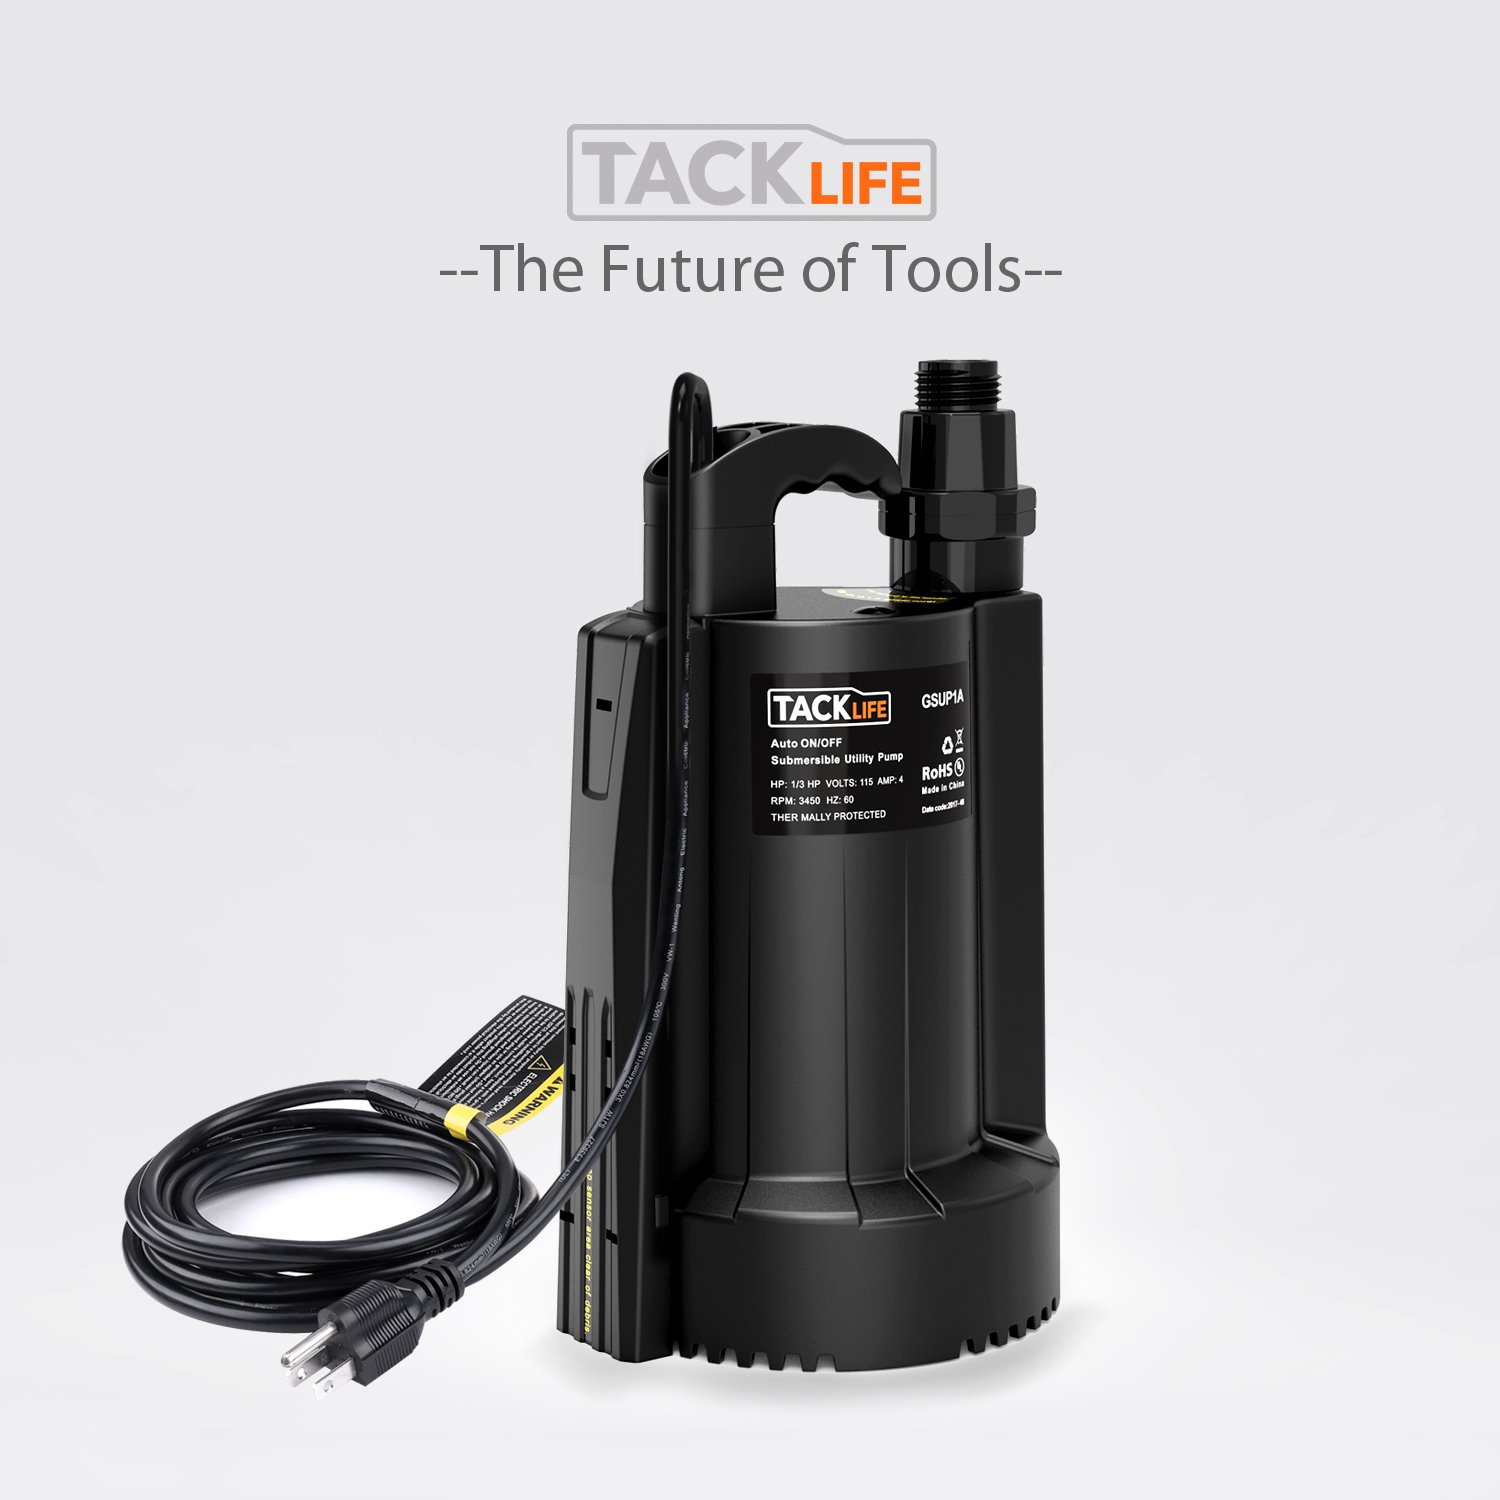 Low Noise with Check Valve TACKLIFE-GSUP1A-HS01 4 Amp High-efficiency Pure Copper Motor with Thermal Protection-2550 GPH Maximum flow Tacklife 1//3 HP Automatic ON//OFF Electric Water Removal Pump Submersible Water Pump